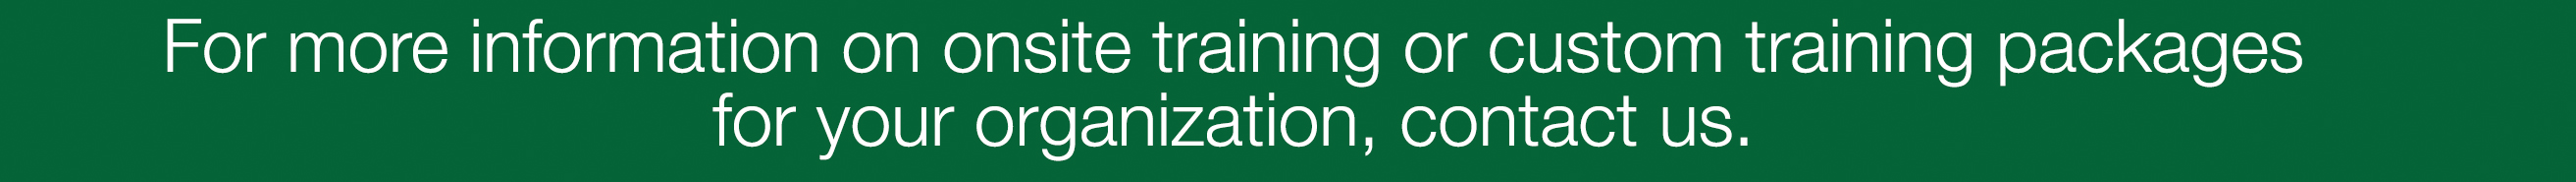 For more information on onsite training or custom training packages for your organization, contact us.